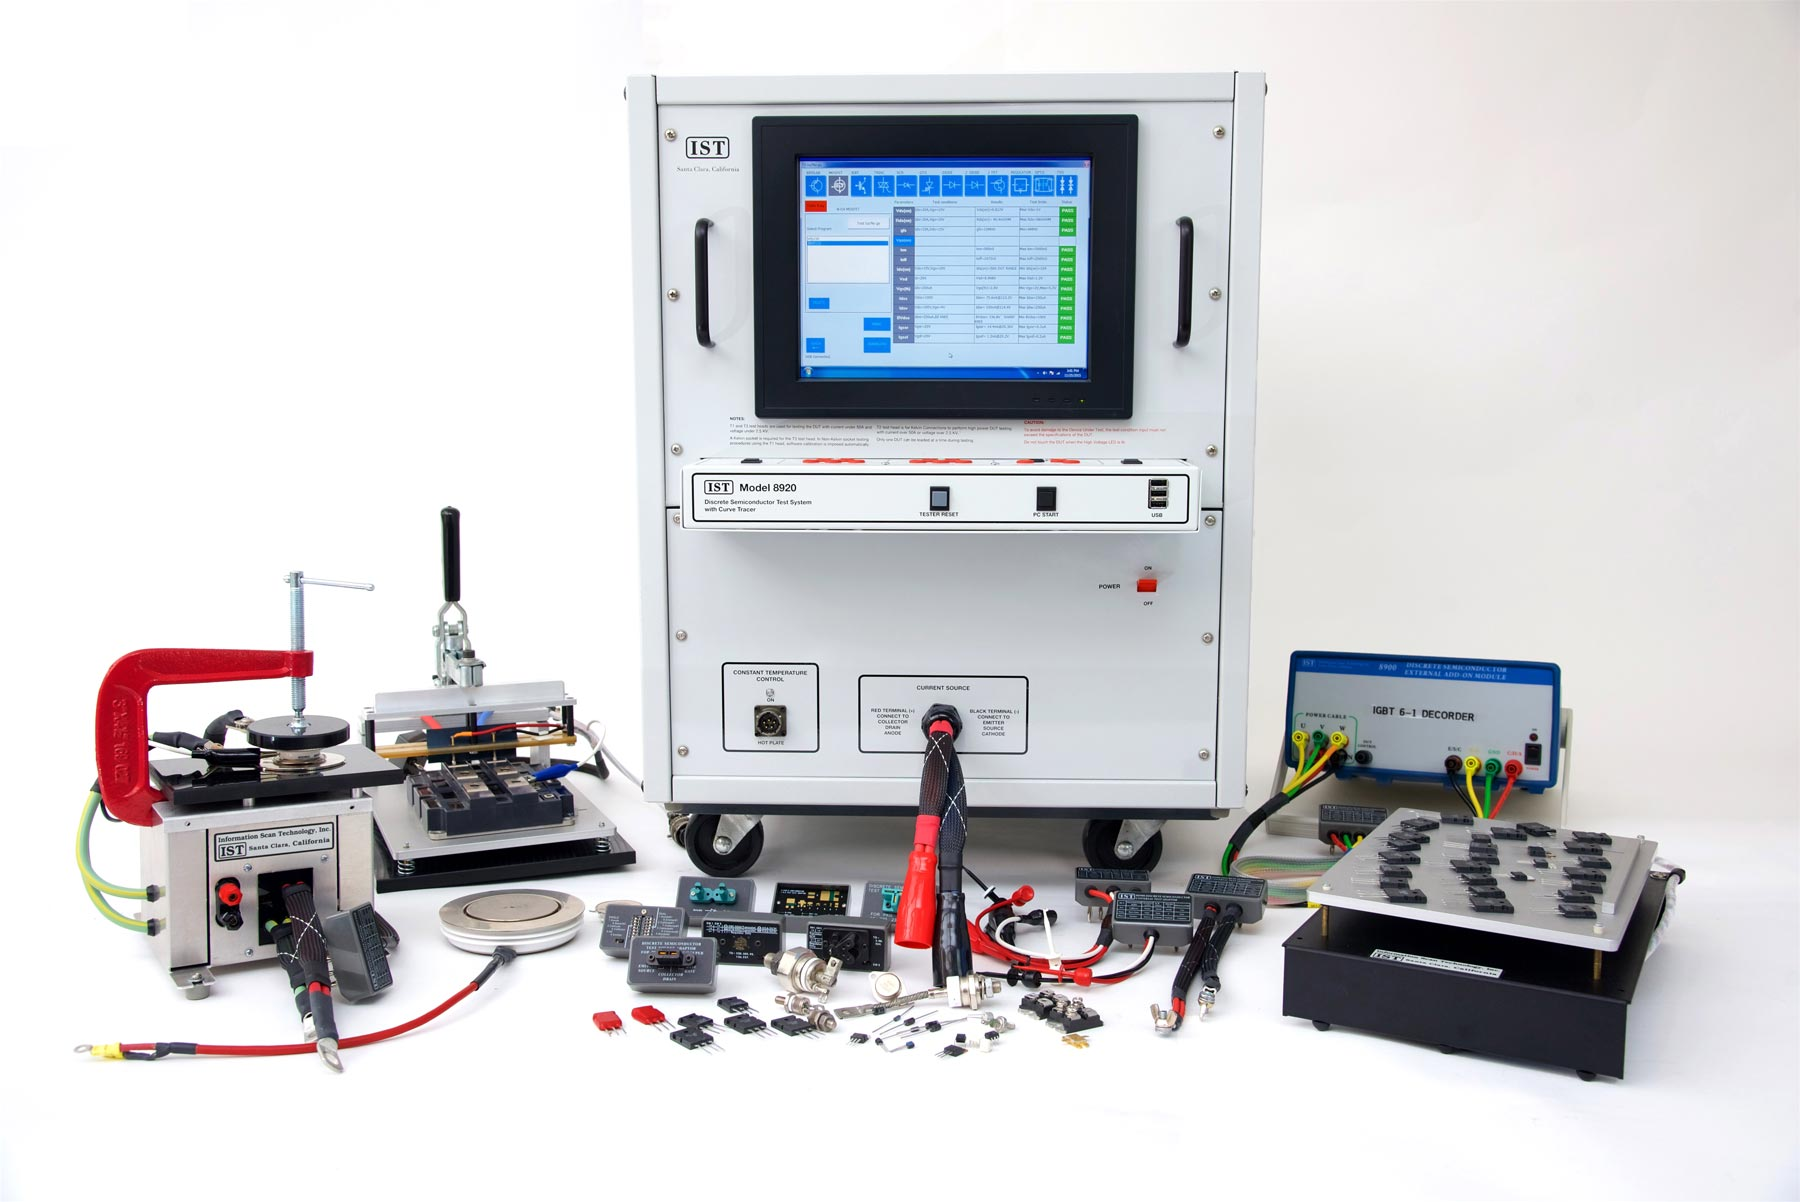 Semiconductor Test Equipment : Ist high powered semiconductor tester information